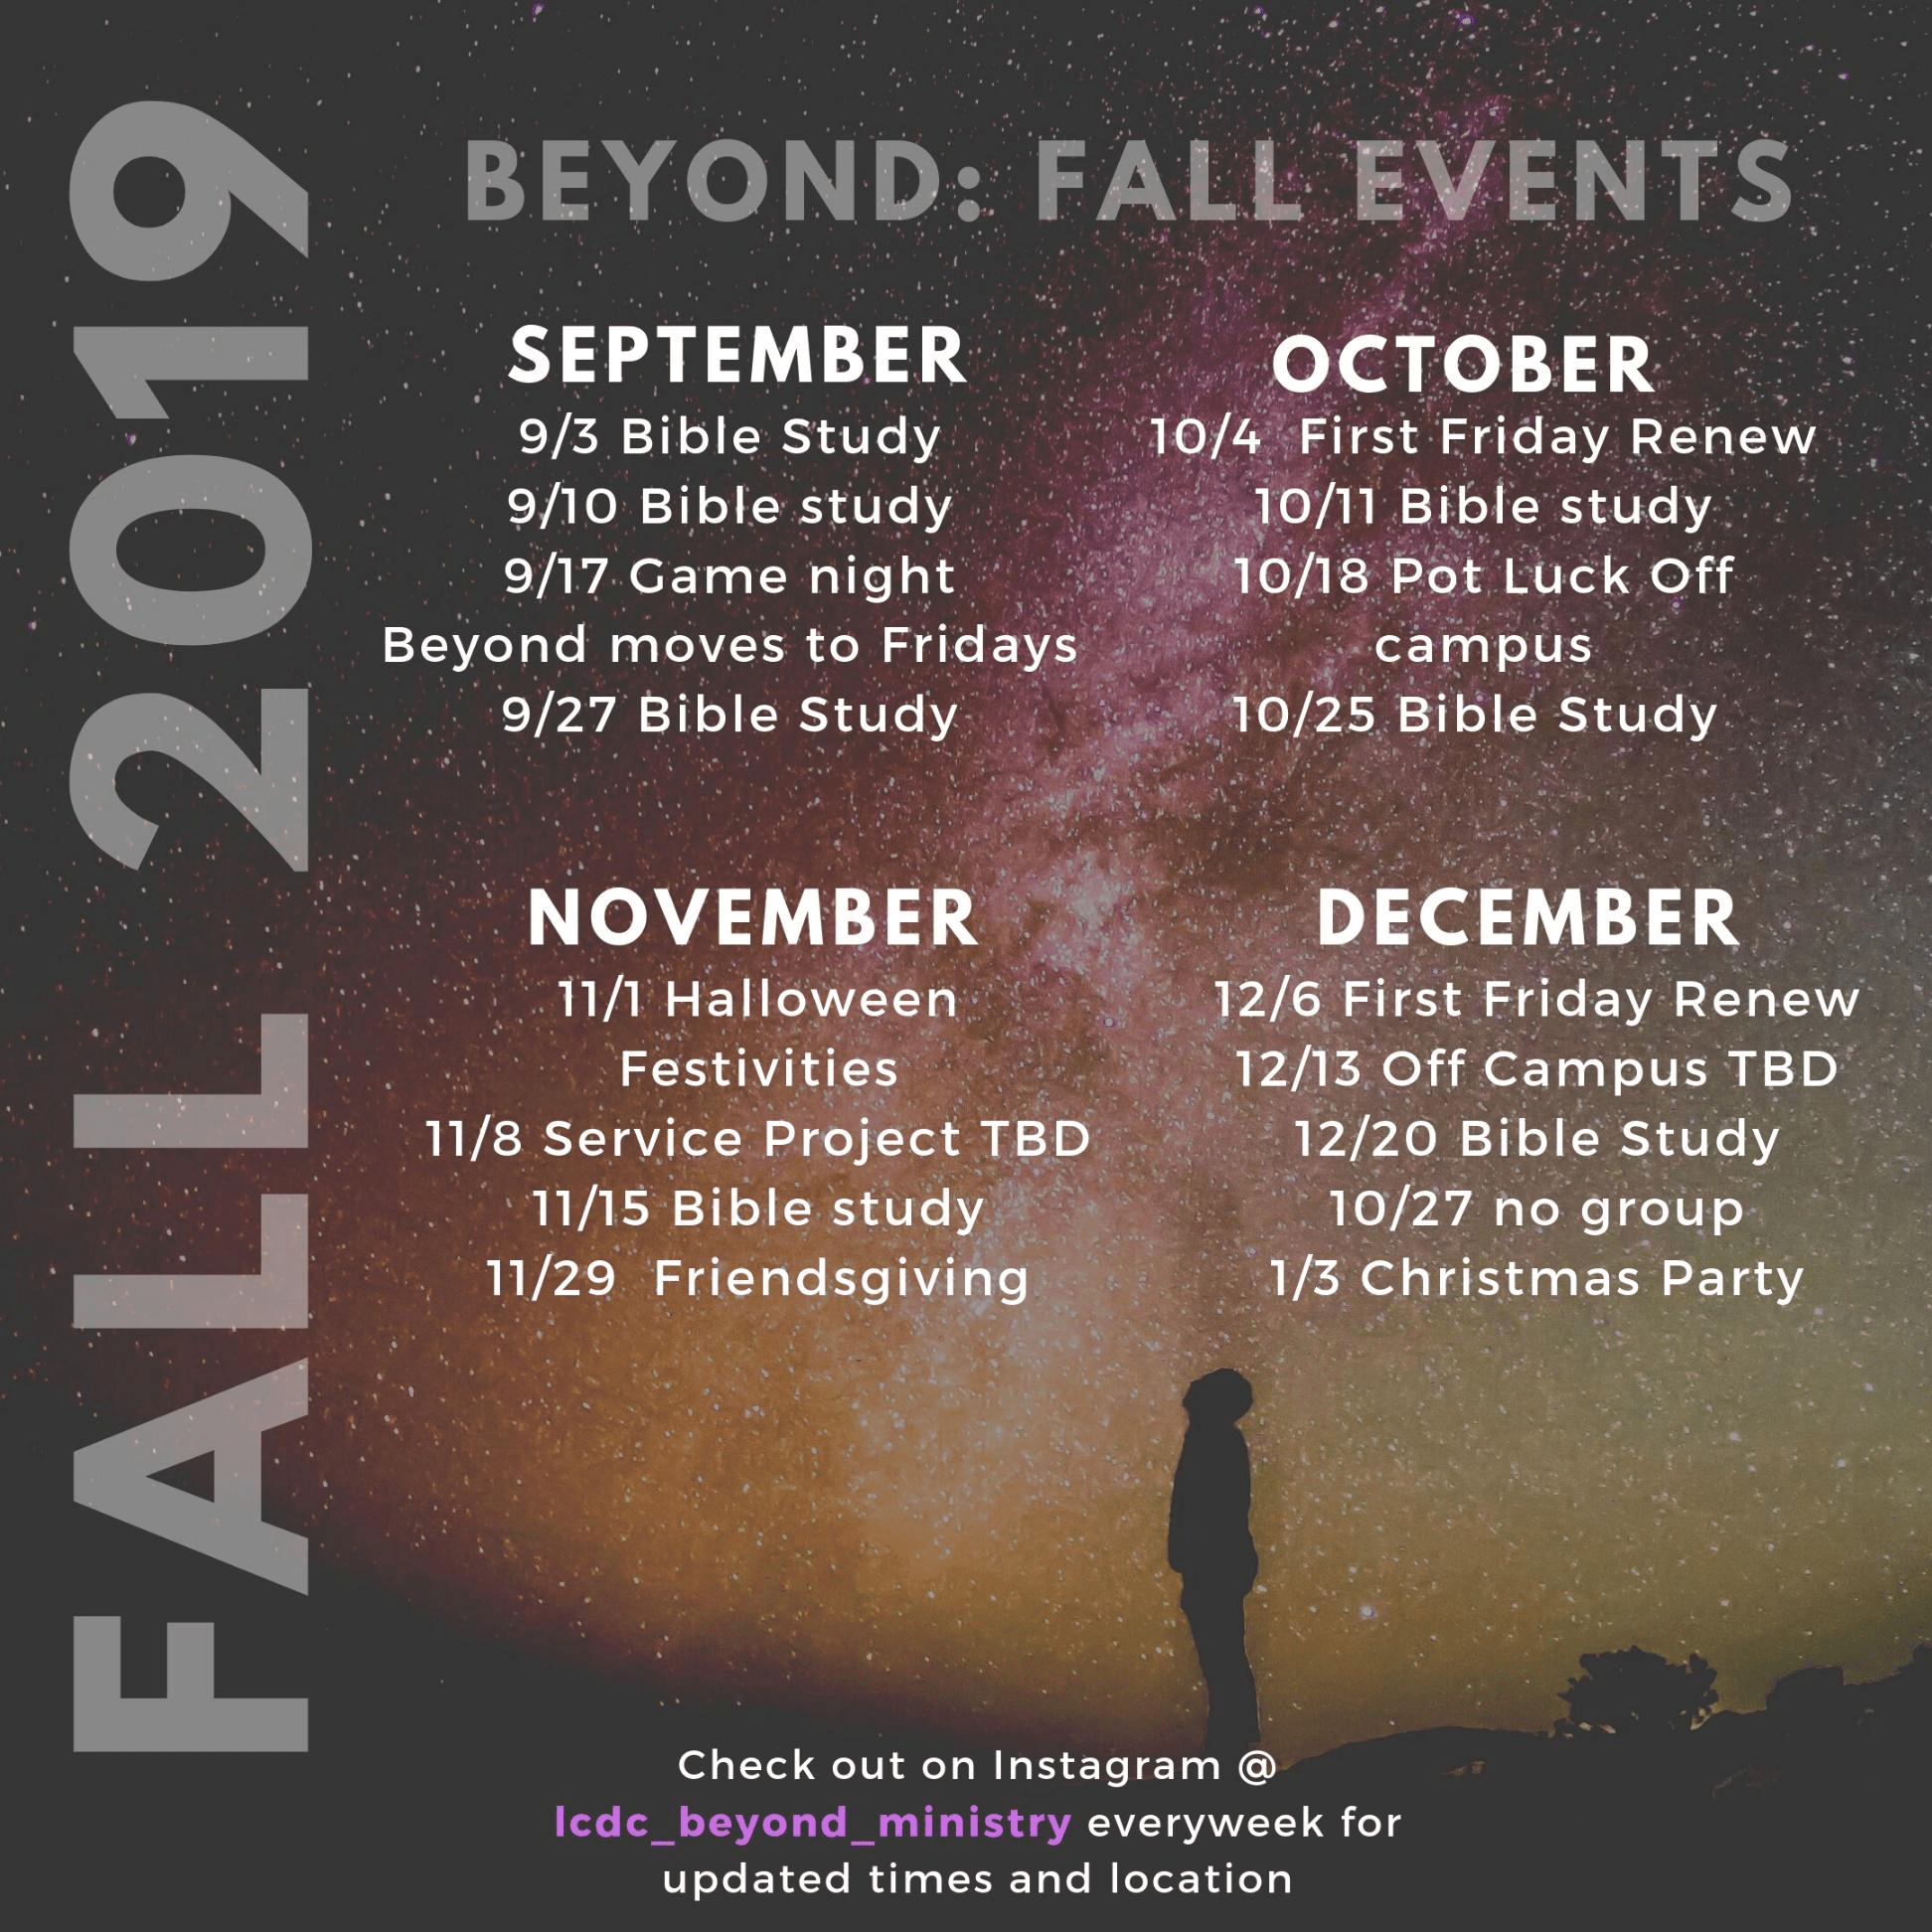 Beyond Young Adults Fall Events